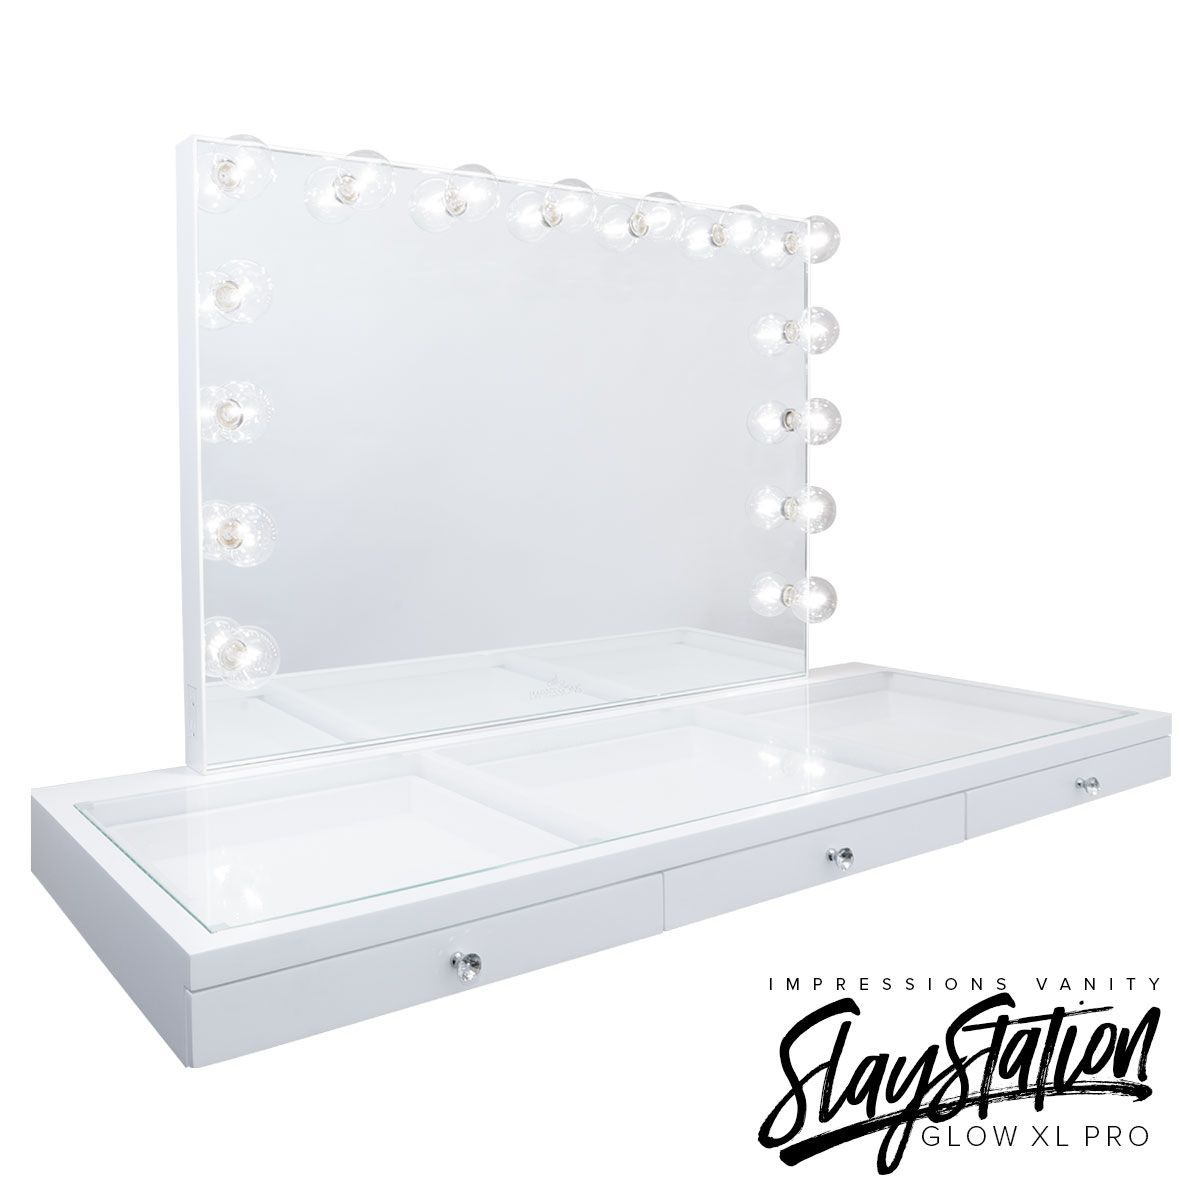 Impressions Vanity Glow XL Pro SlayStation. Also available as a table top without the Glow XL Pro Vanity Mirror.